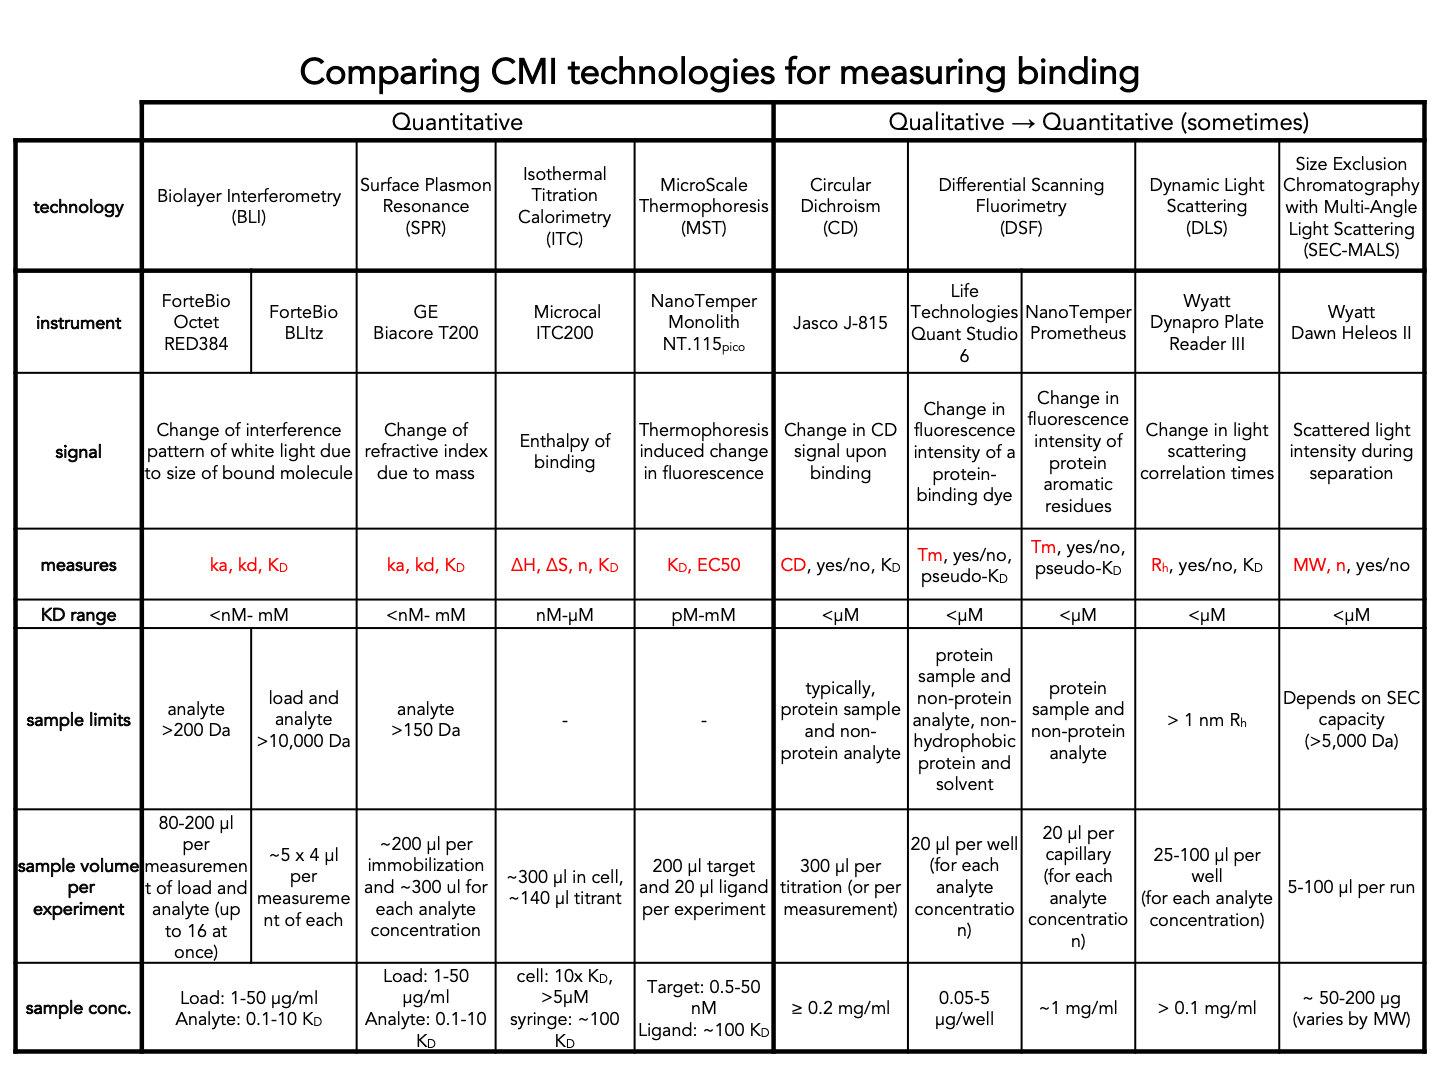 CMI Technology Comparison Table